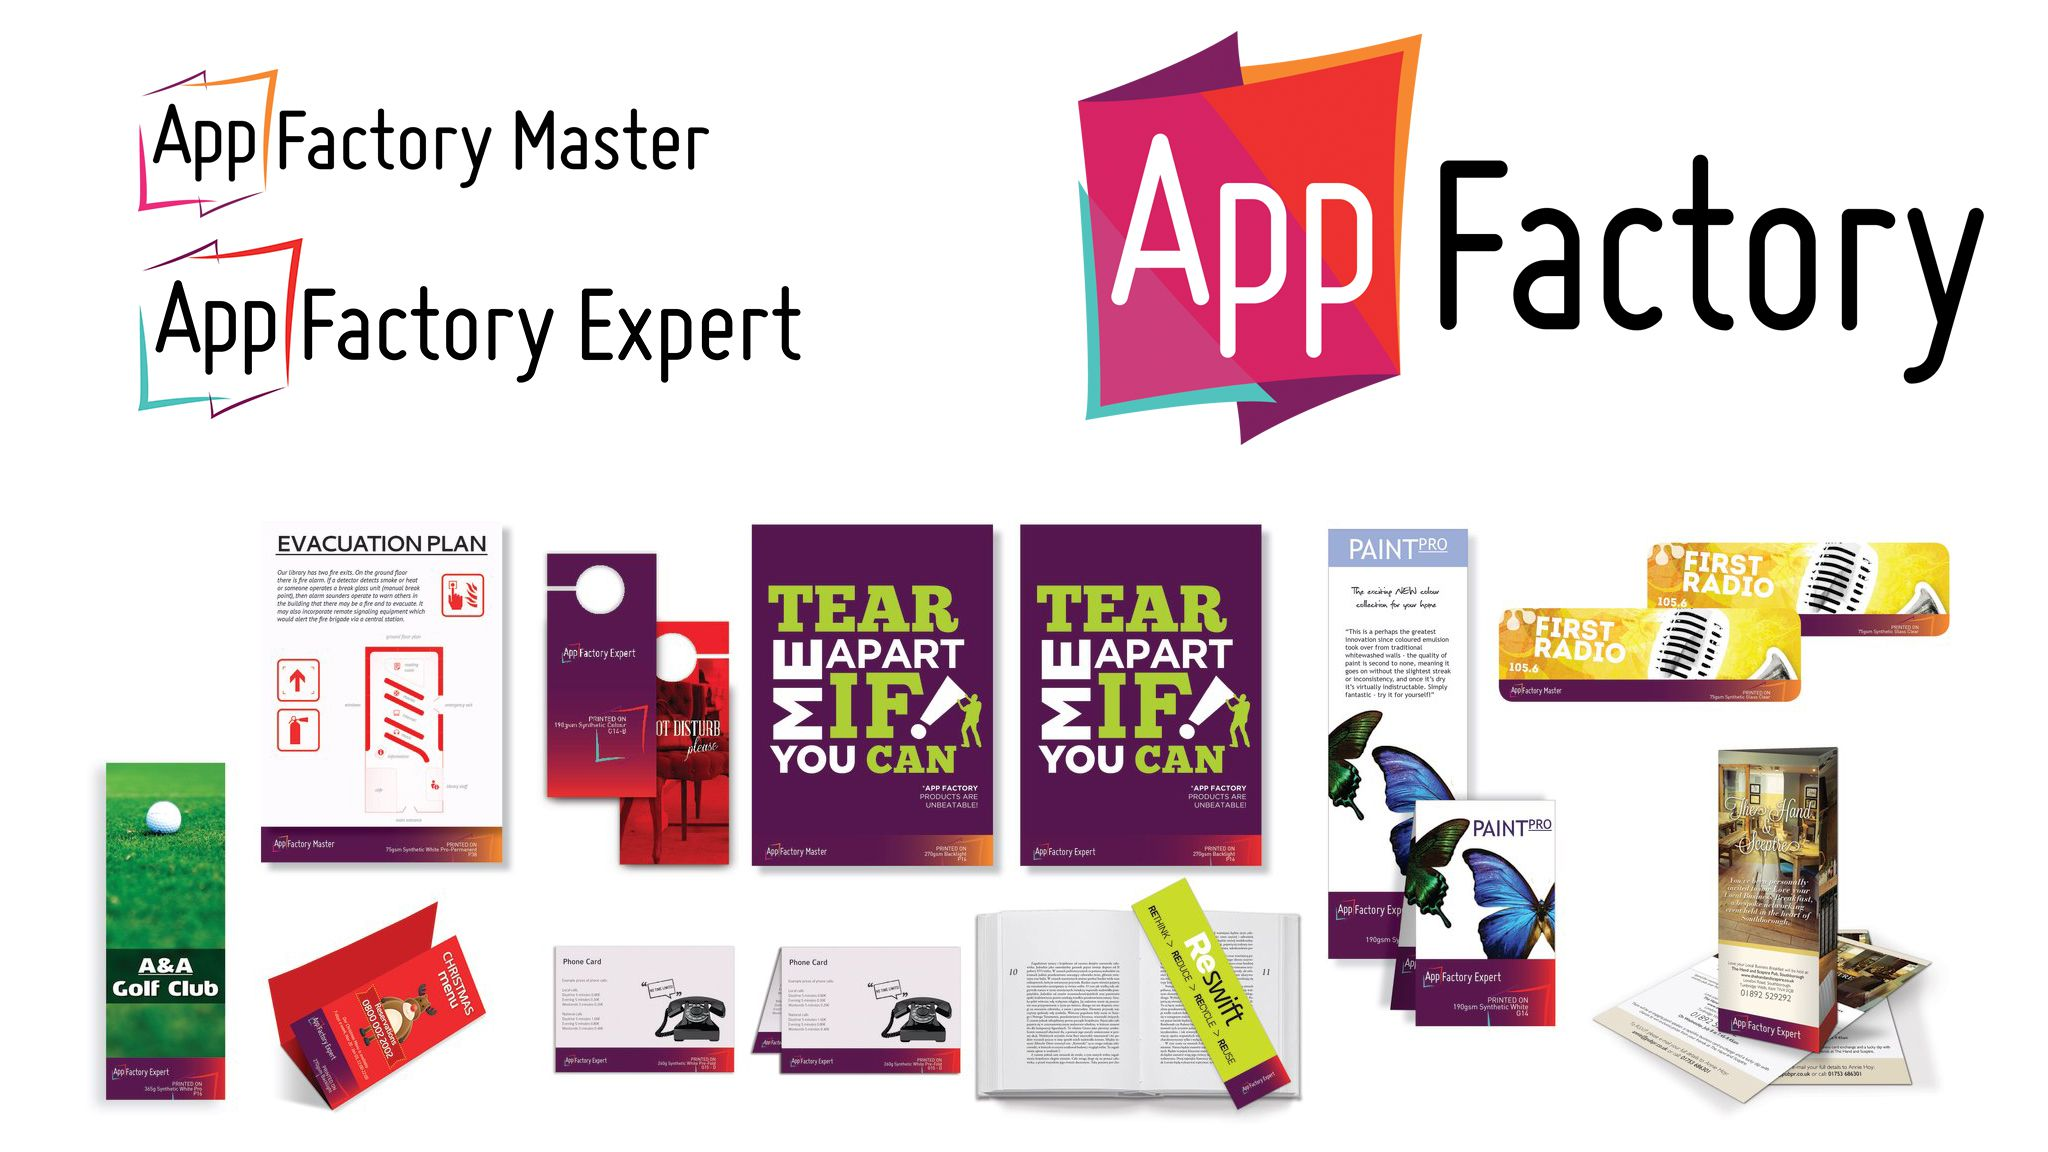 AppFactory Hadron for Business